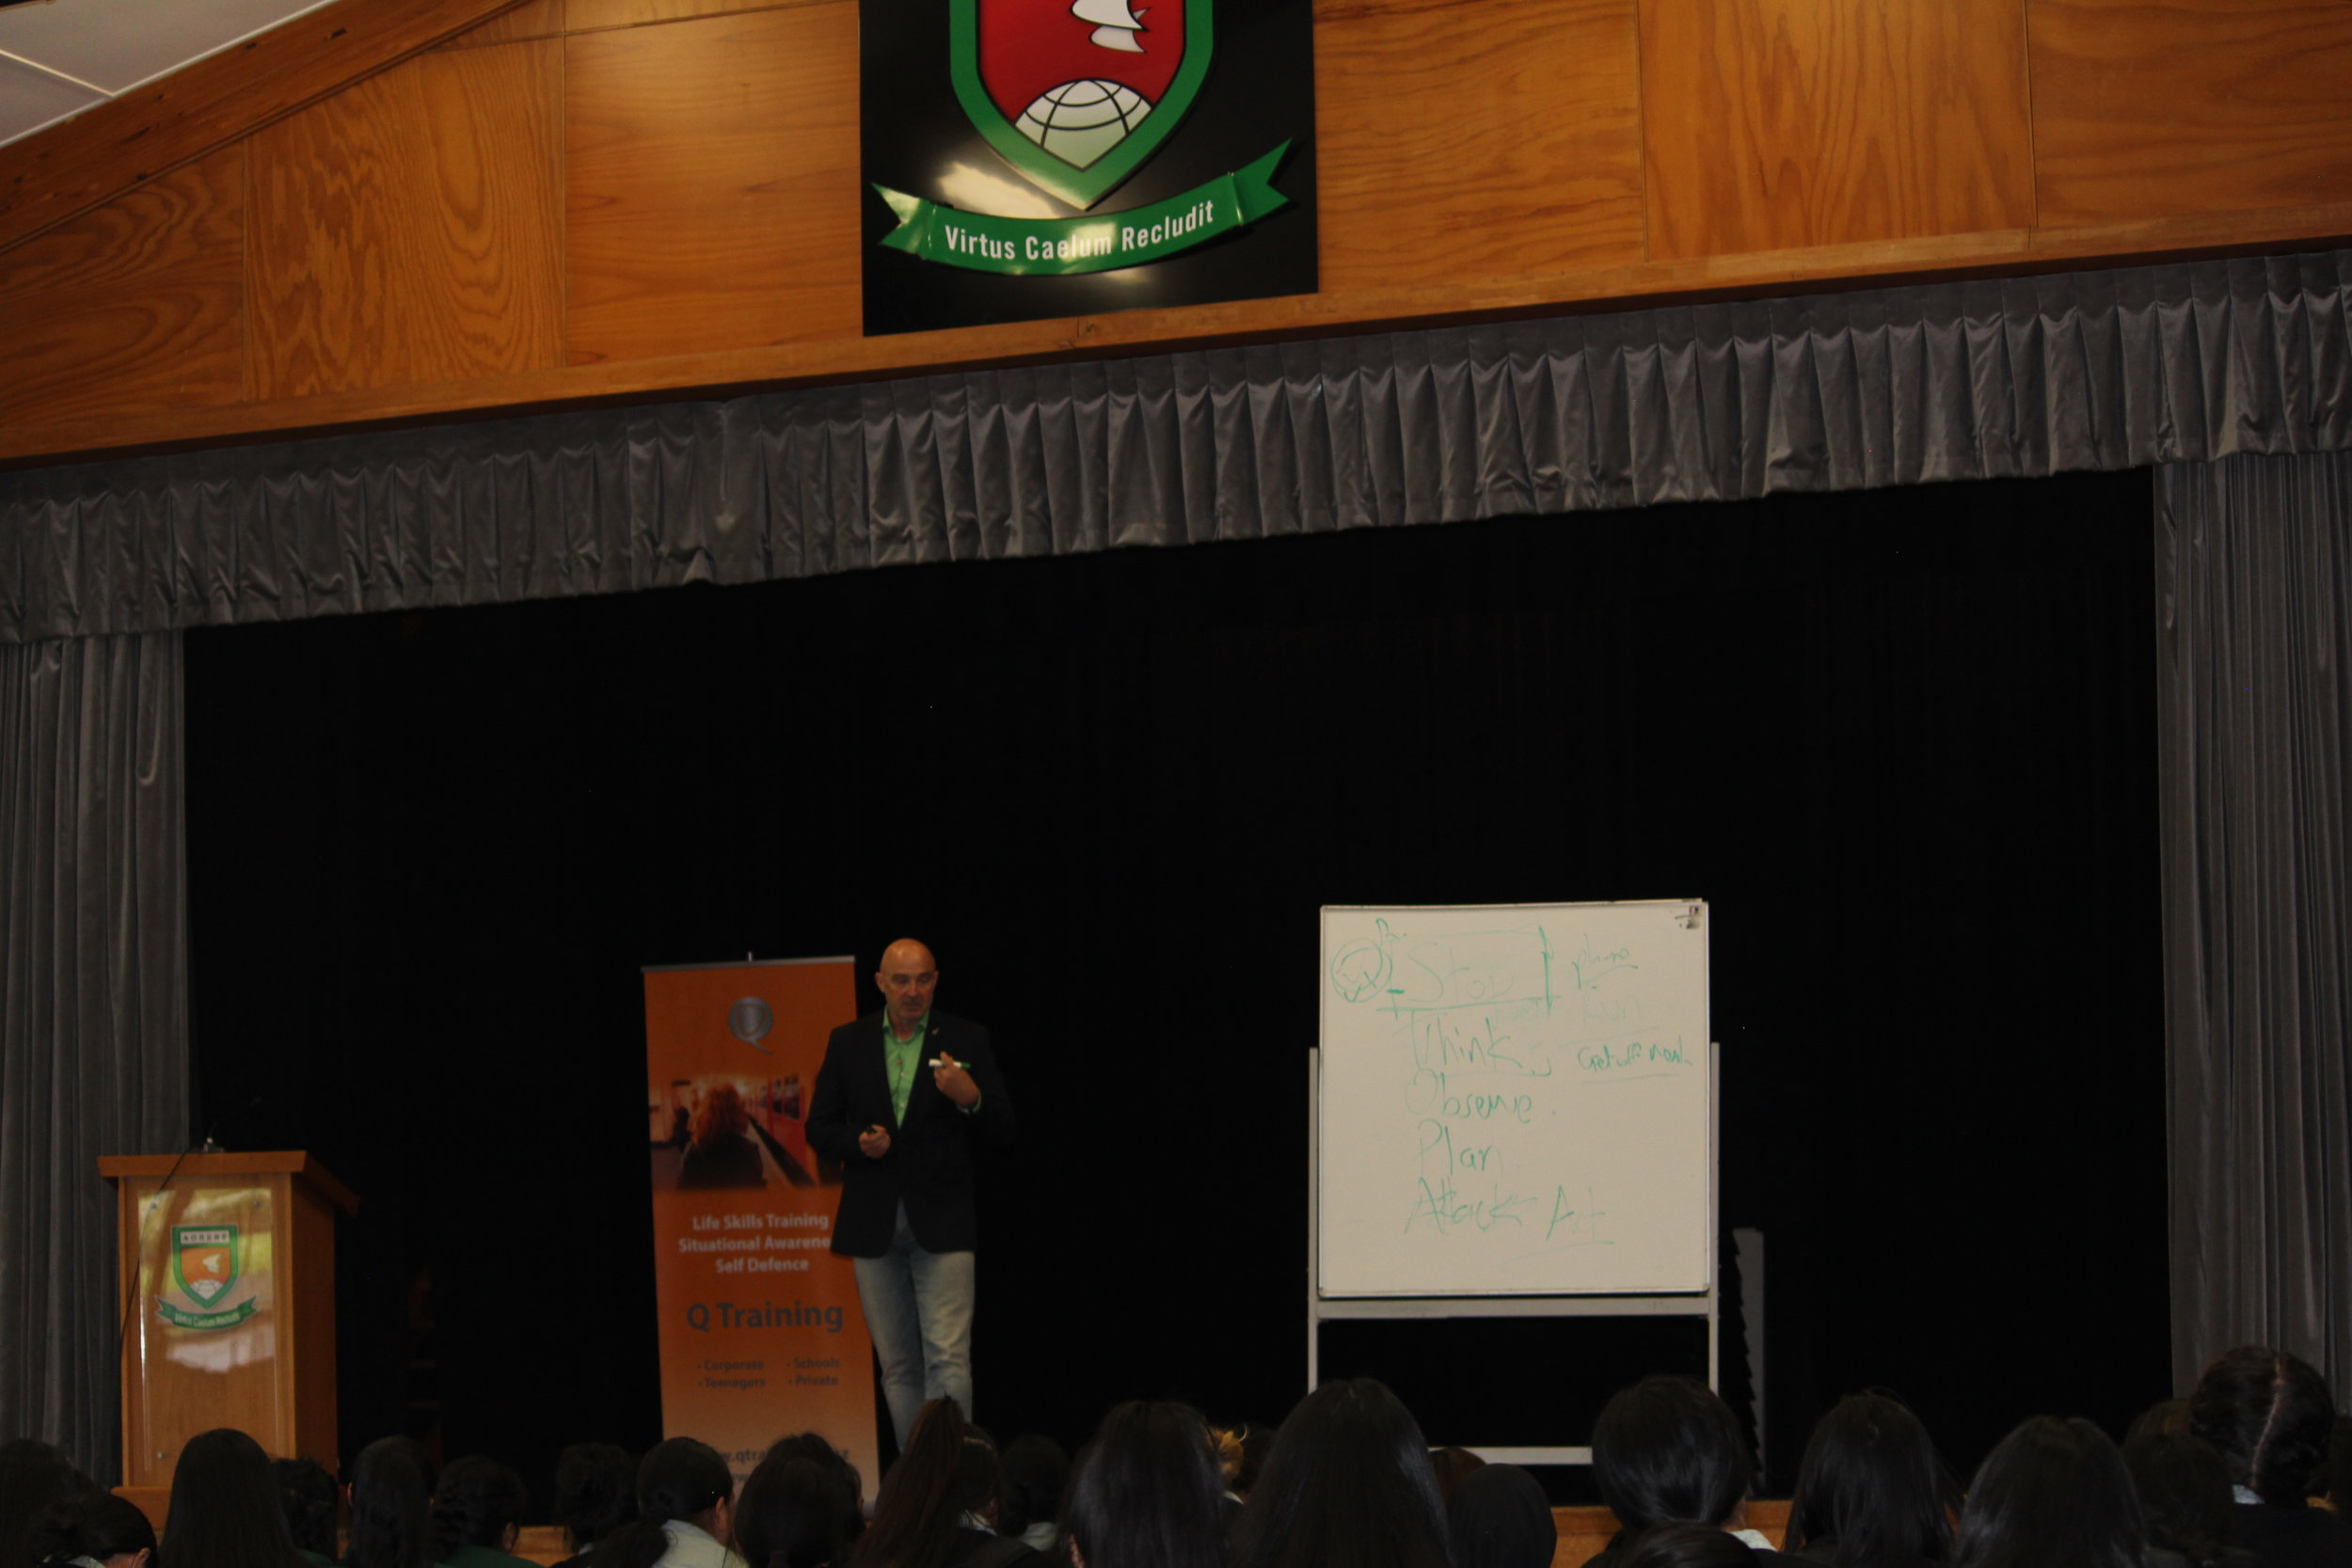 Situational Awareness - The greatest skill you can aquire for your personal safety and security. At School, at work, in travel, in life - A key message of the keynote presentation to Aorere College year 12 and 13 students in Nov 2018.